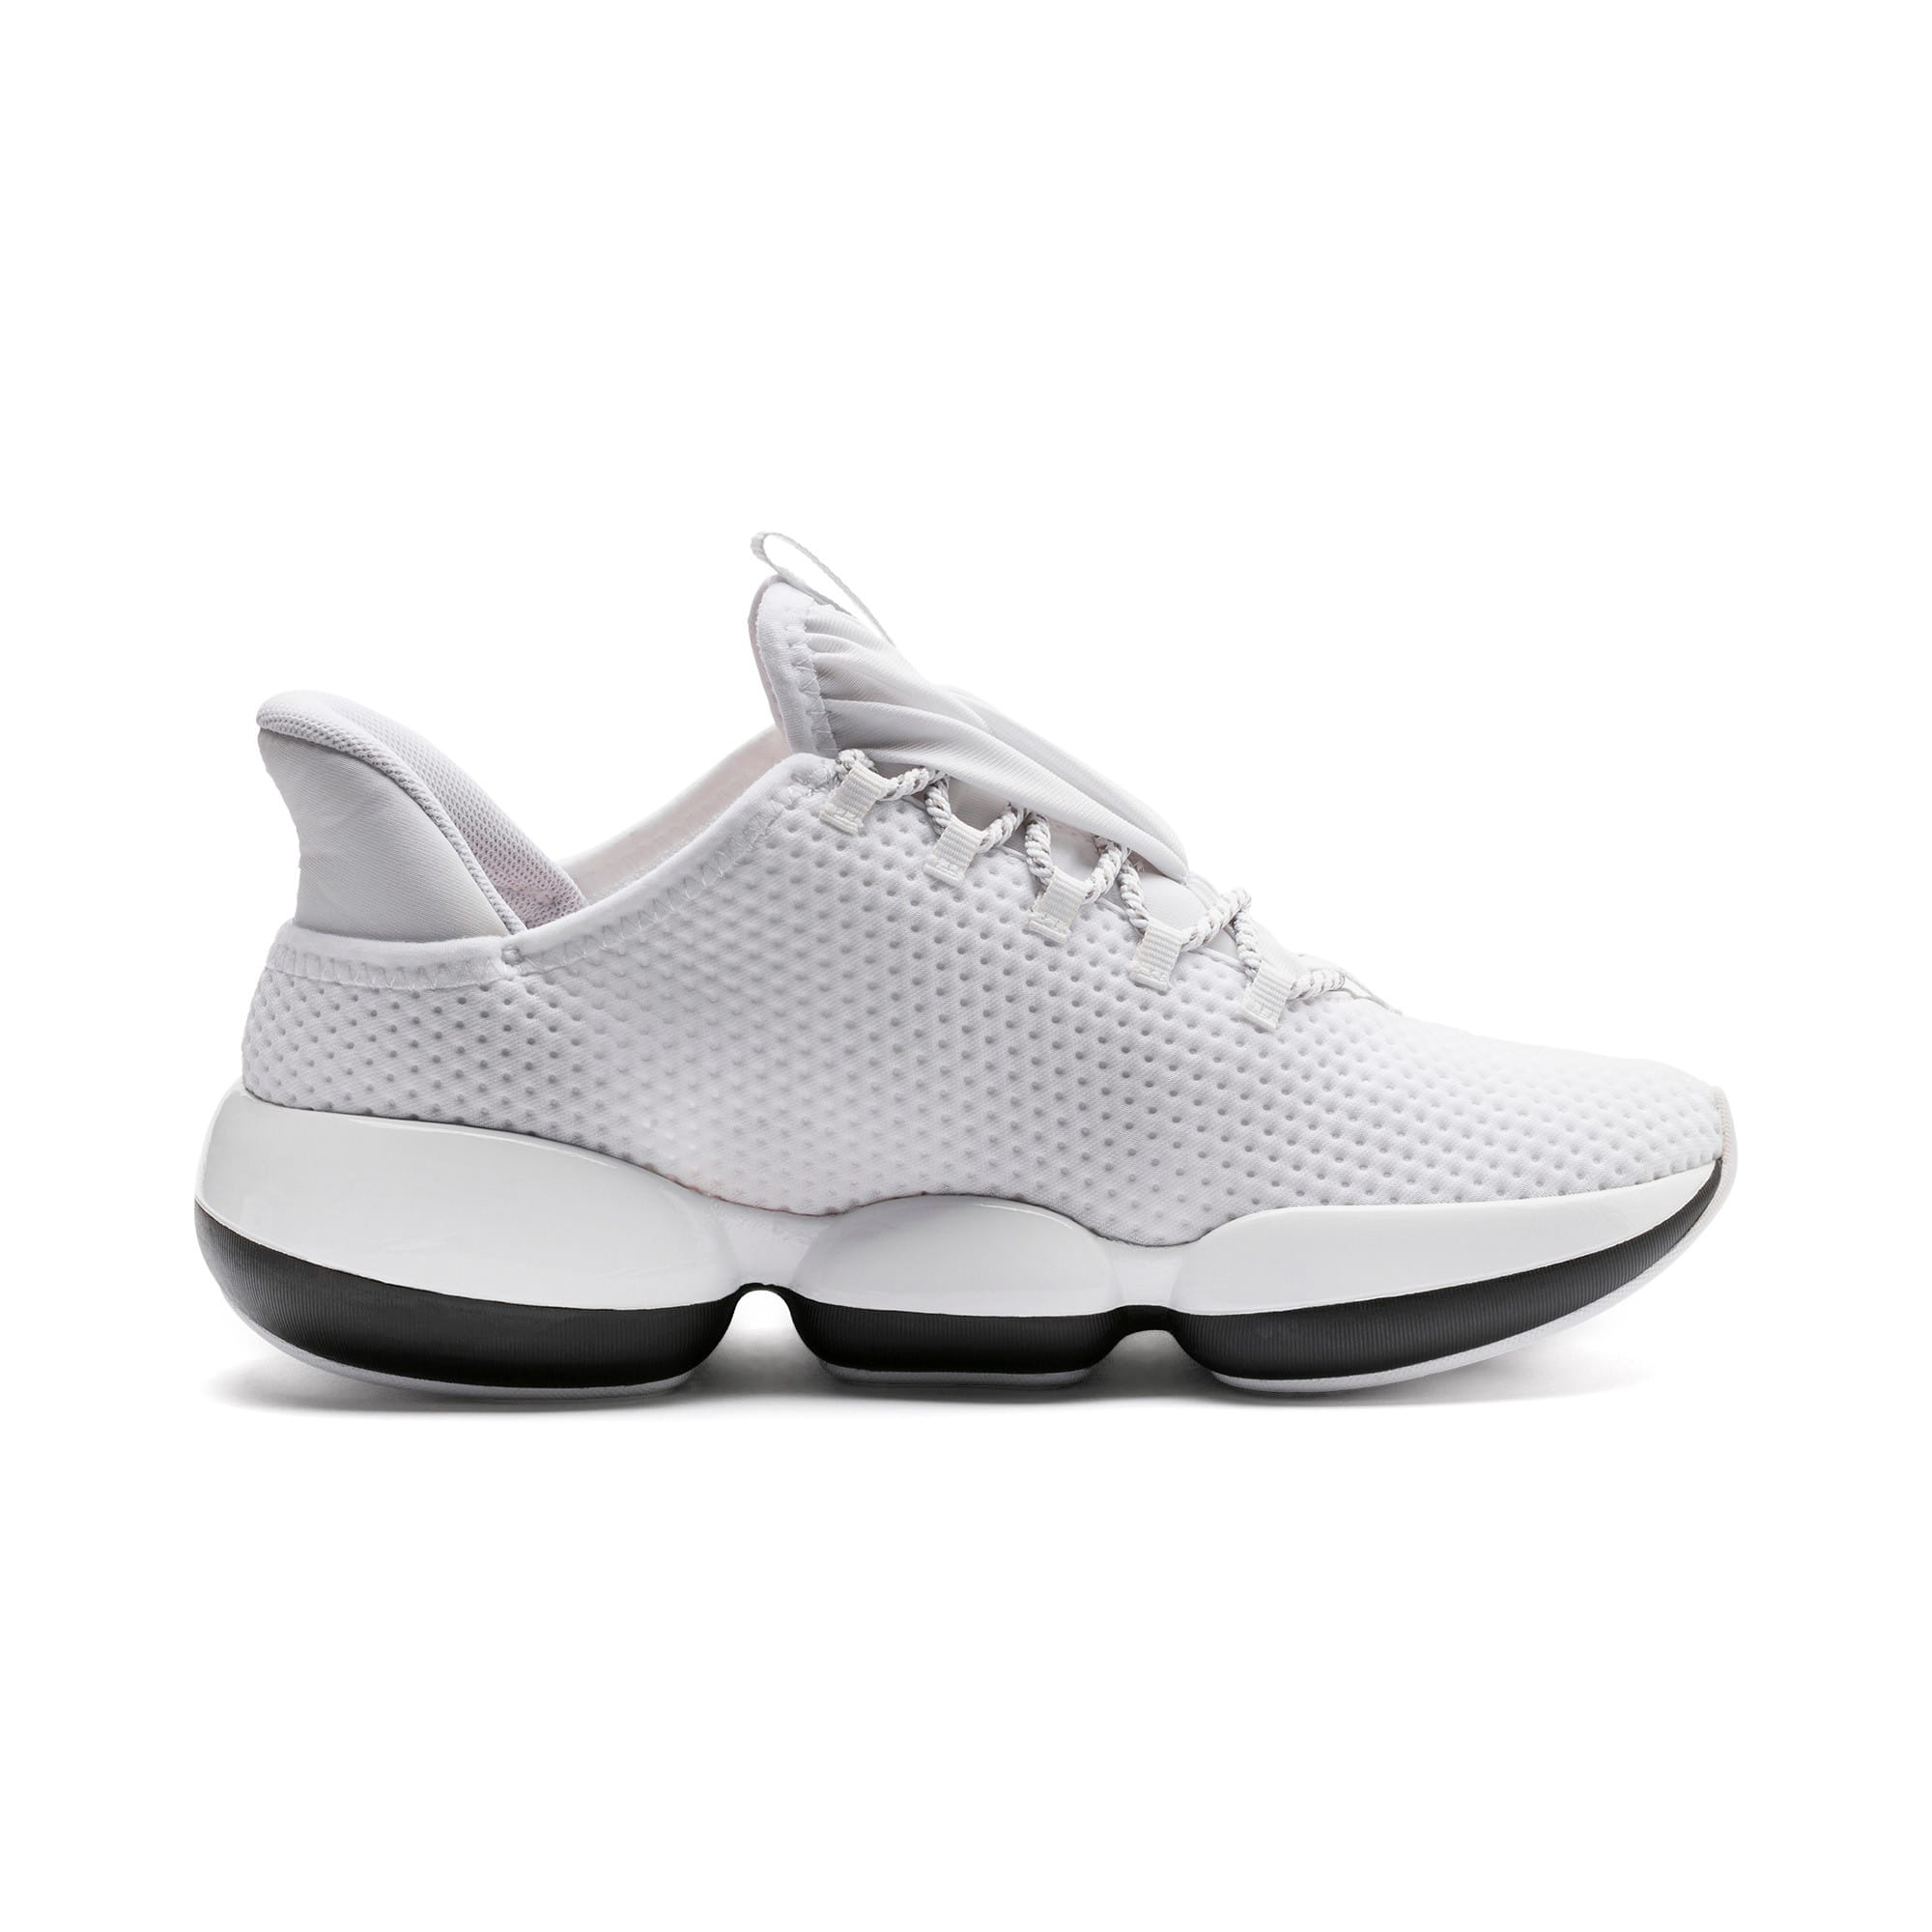 Thumbnail 6 of Mode XT Women's Training Trainers, Puma White-Puma Black, medium